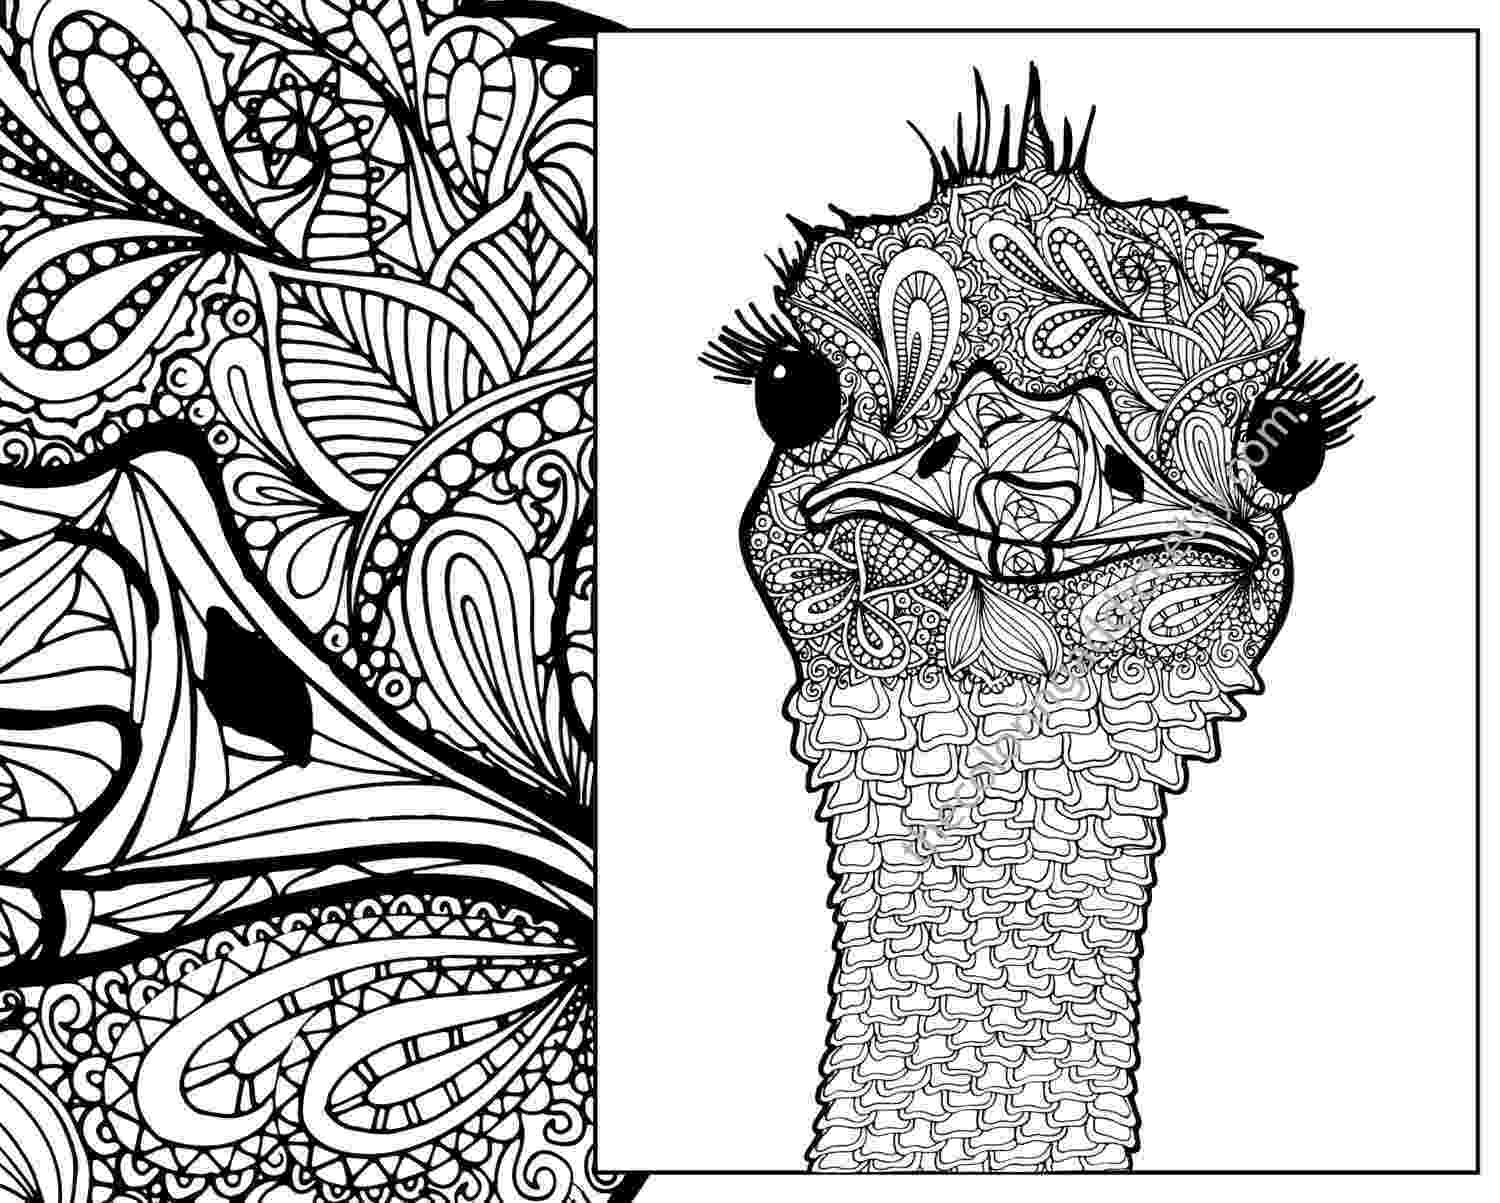 zentangle colouring pages animals ostrich coloring sheet animal coloring pdf zentangle adult colouring animals pages zentangle